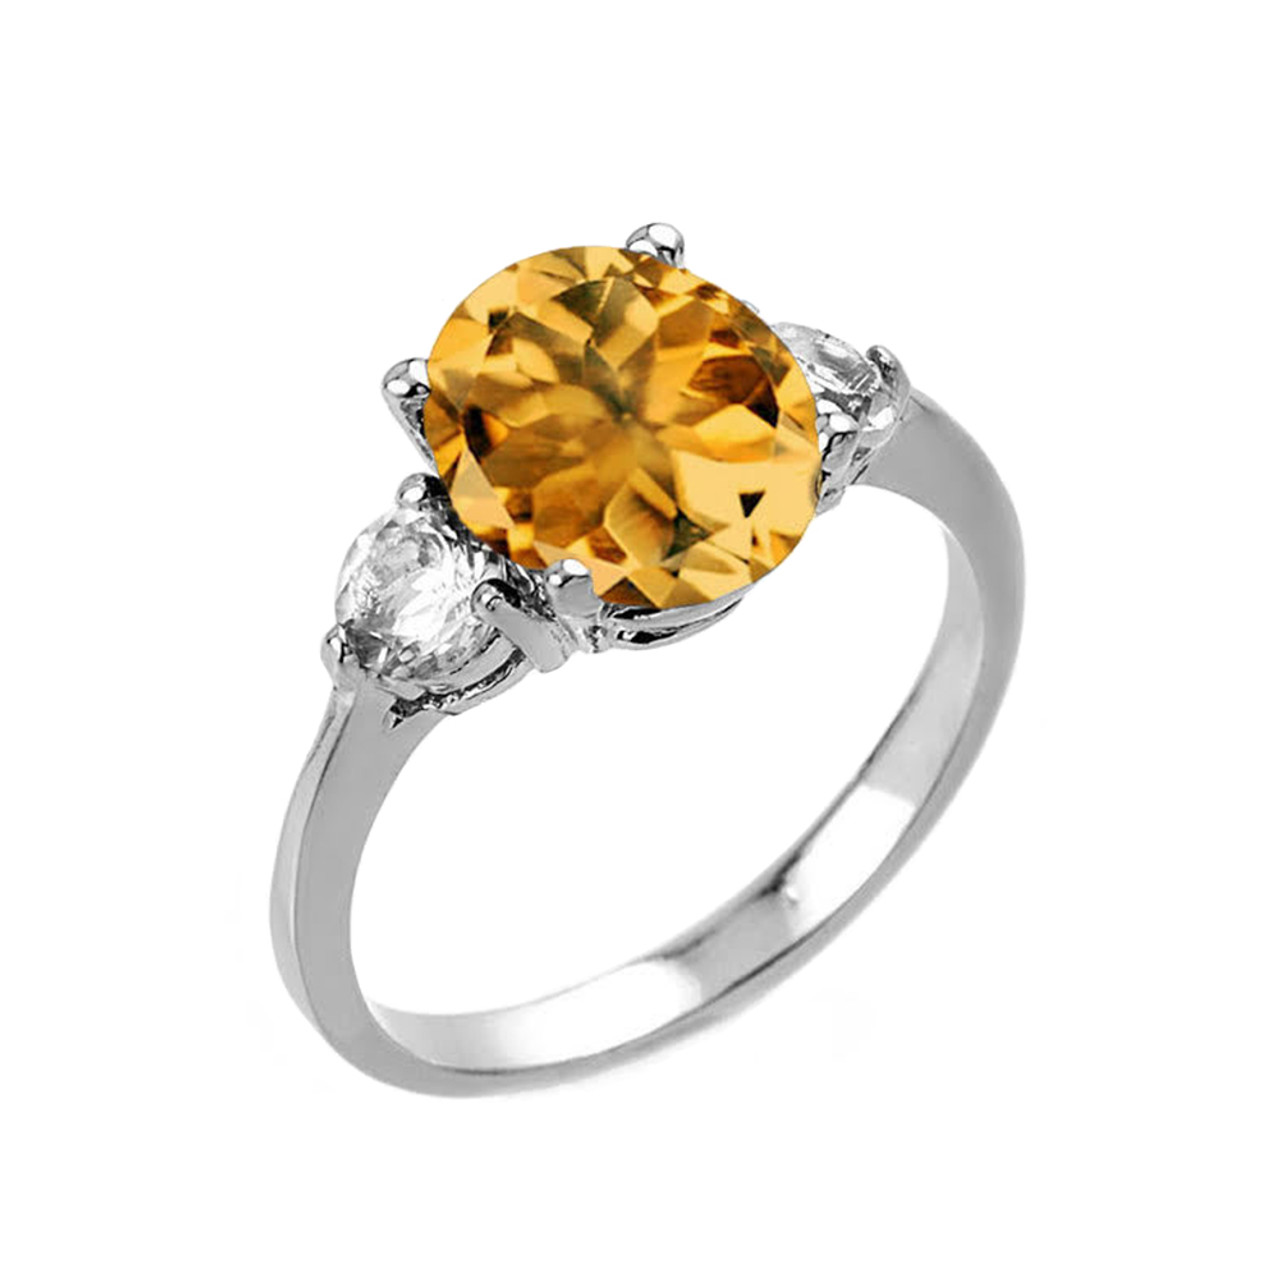 2.0 CTW Oval Golden Yellow Citrine Three Stone Engagement Ring in White Gold